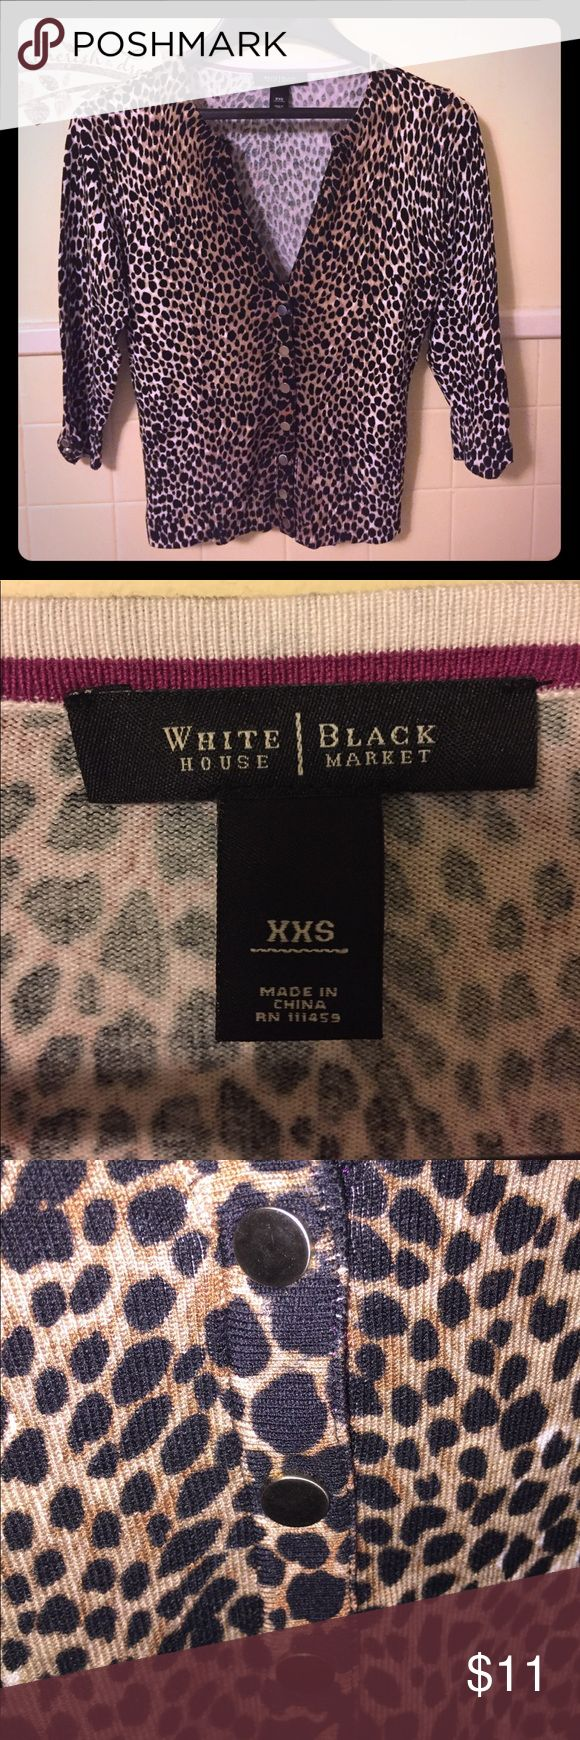 LikeNew White House Black Market Cheetah Cardigan This cardigan is in perfect condition and has only been worn one time. It's is super cute to wear formally or even casually as well. If it wasn't to small for me I would definitely be keeping it for myself! White House Black Market Sweaters Cardigans